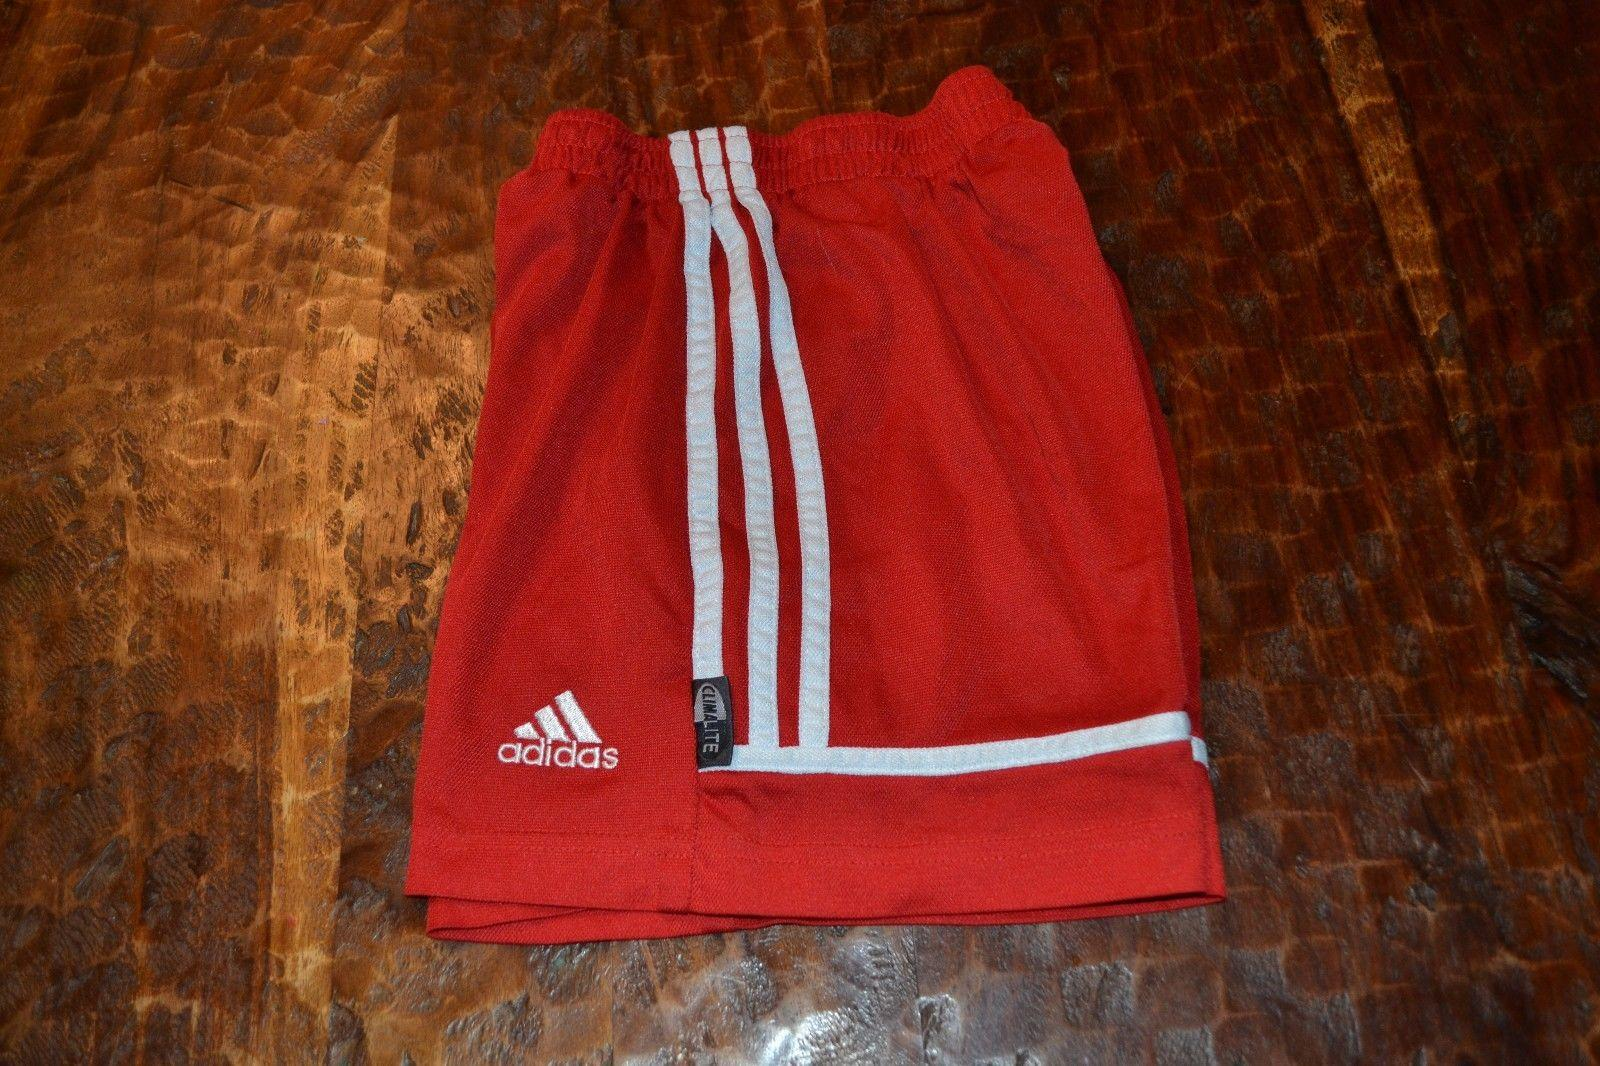 eeaed1c0368fb ADIDAS ~ Boys Girls Youth Small ~ Basketball Soccer Shorts ~ Red White